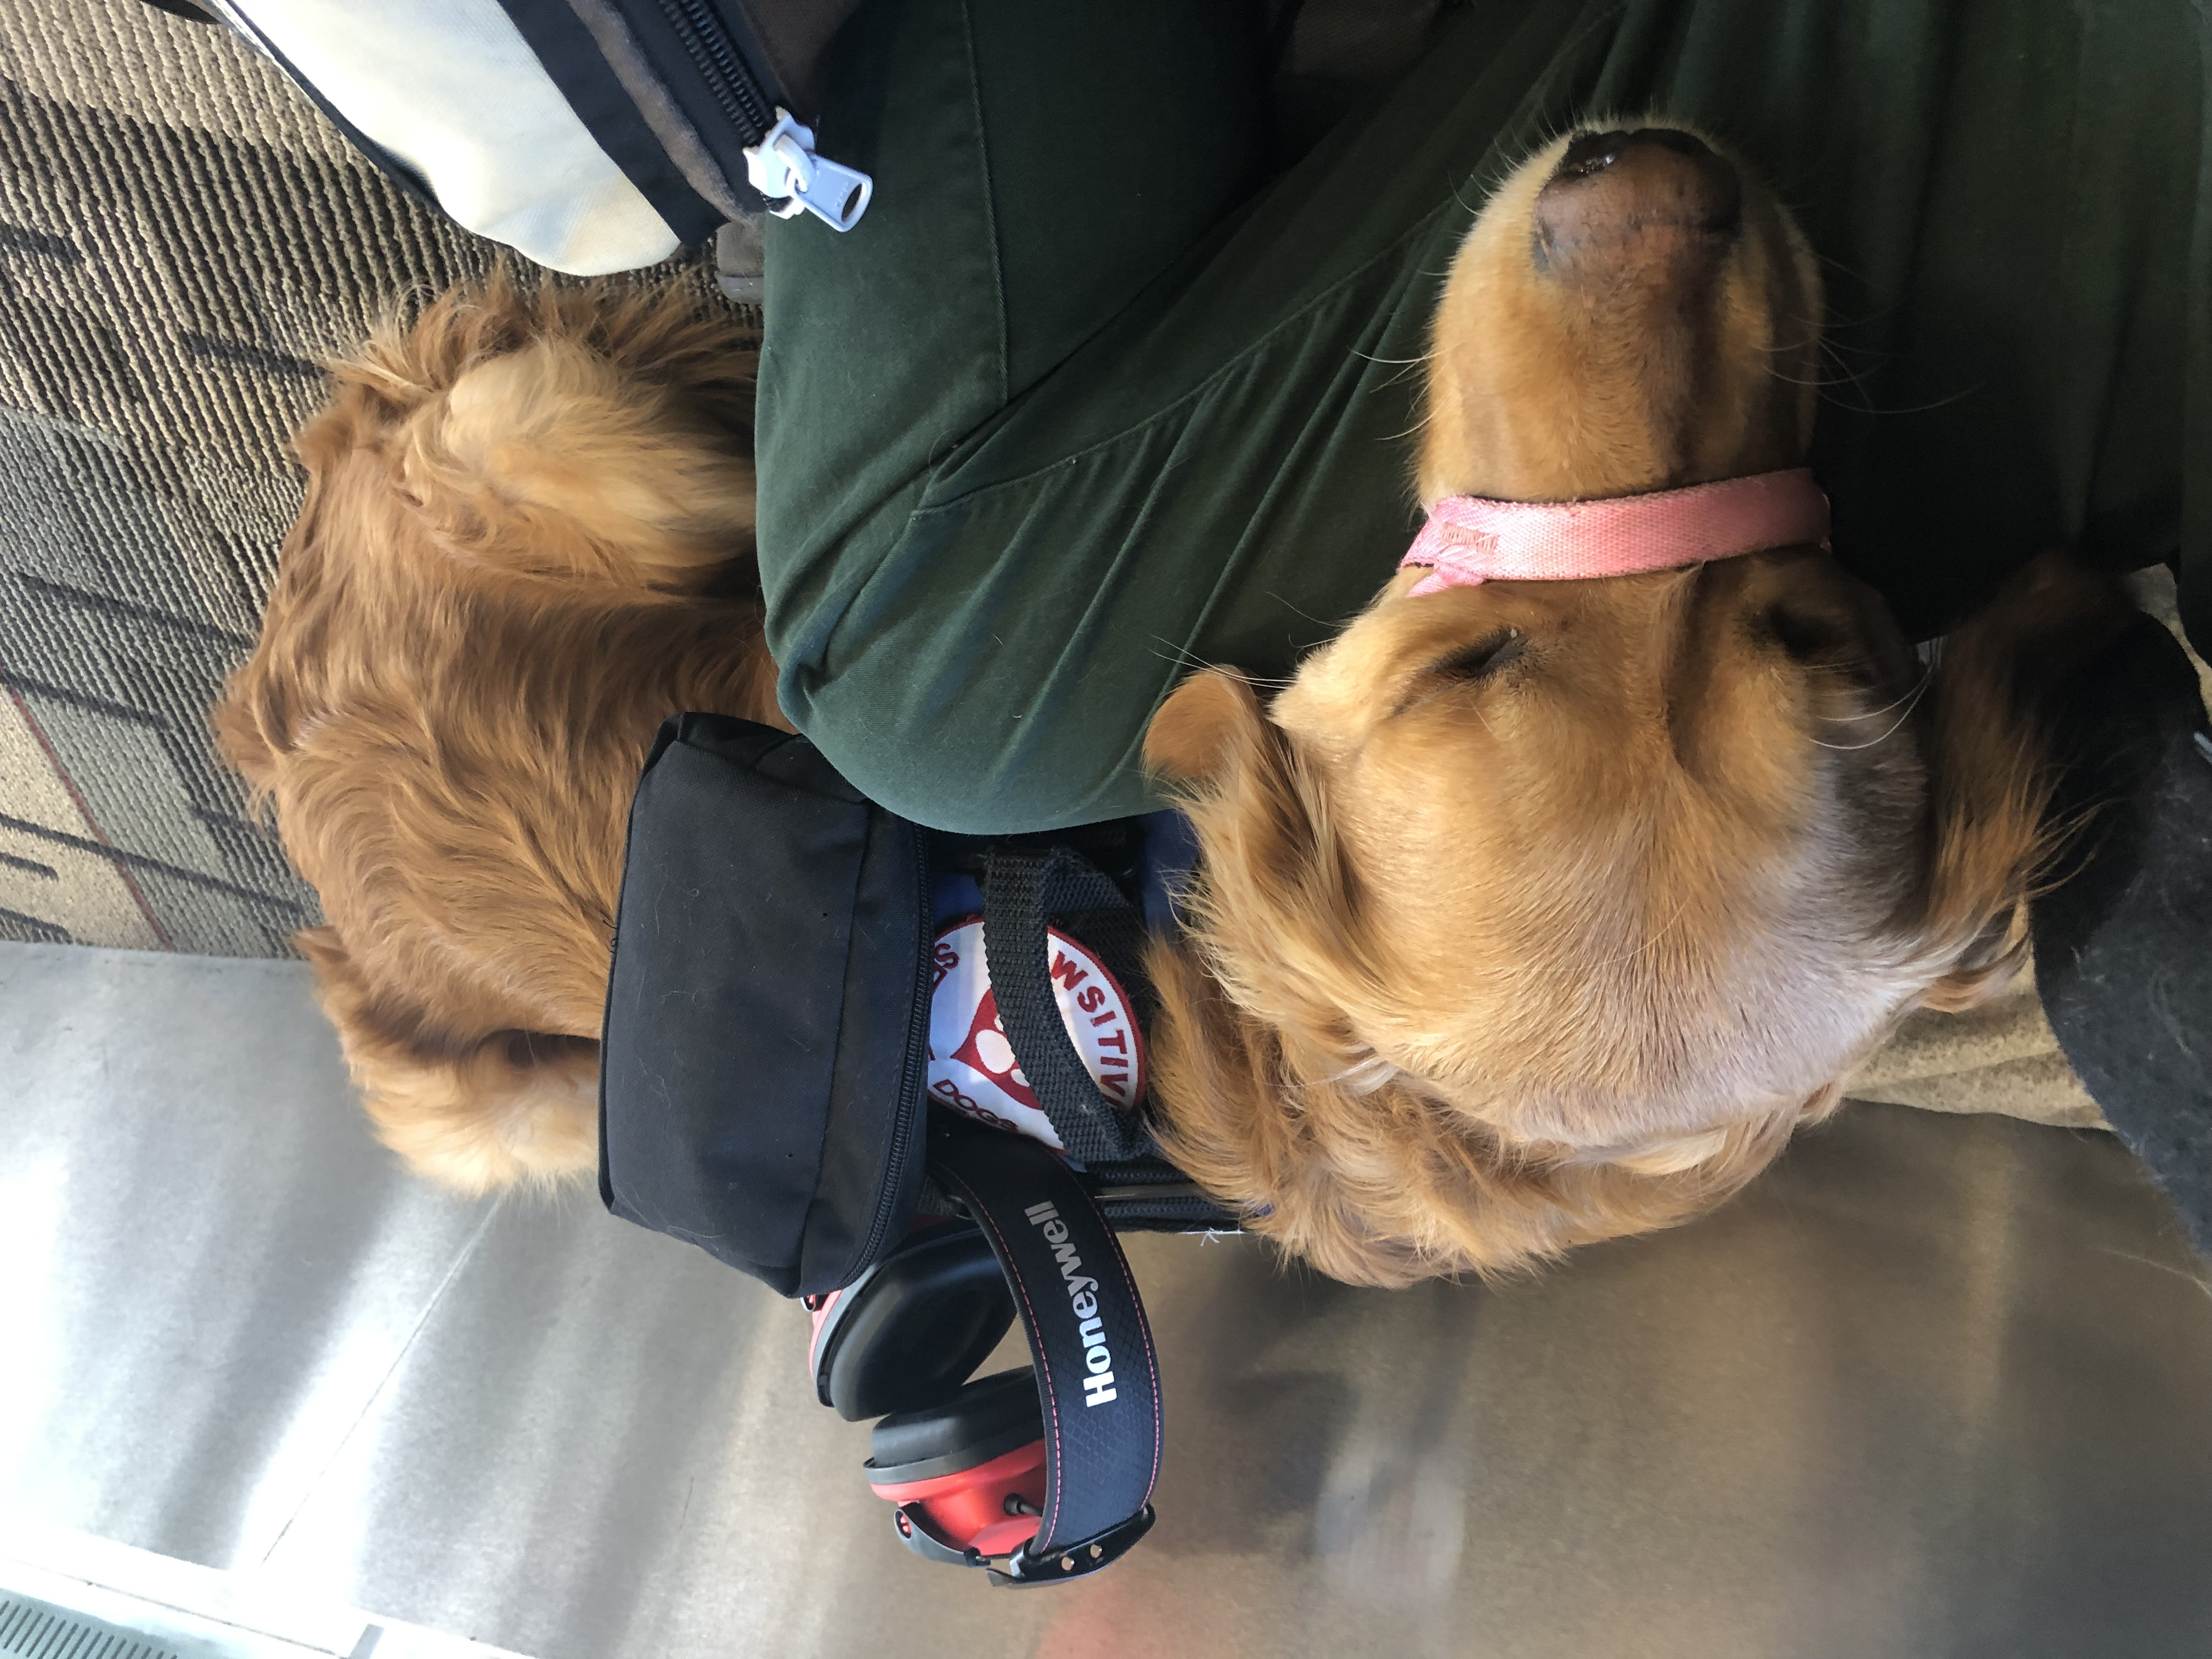 Service dog waiting to go on the plane